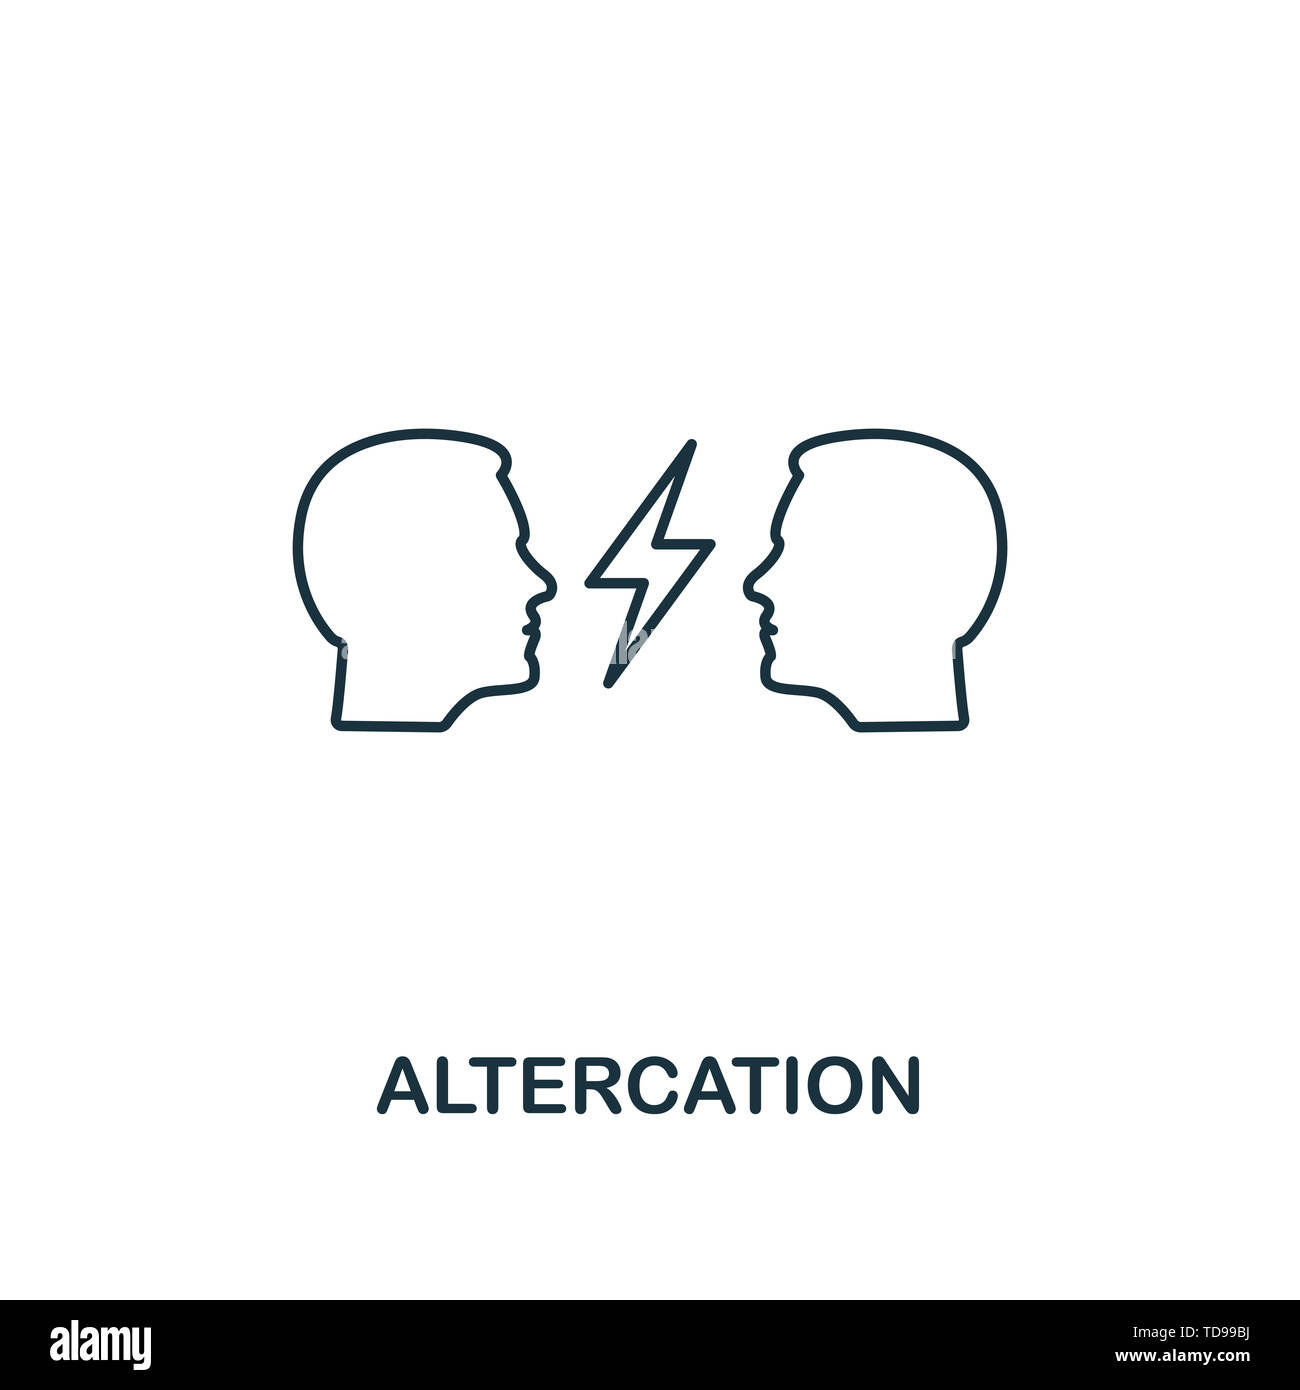 Altercation icon. Thin line design symbol from business ethics icons collection. Pixel perfect altercation icon for web design, apps, software, print  - Stock Image